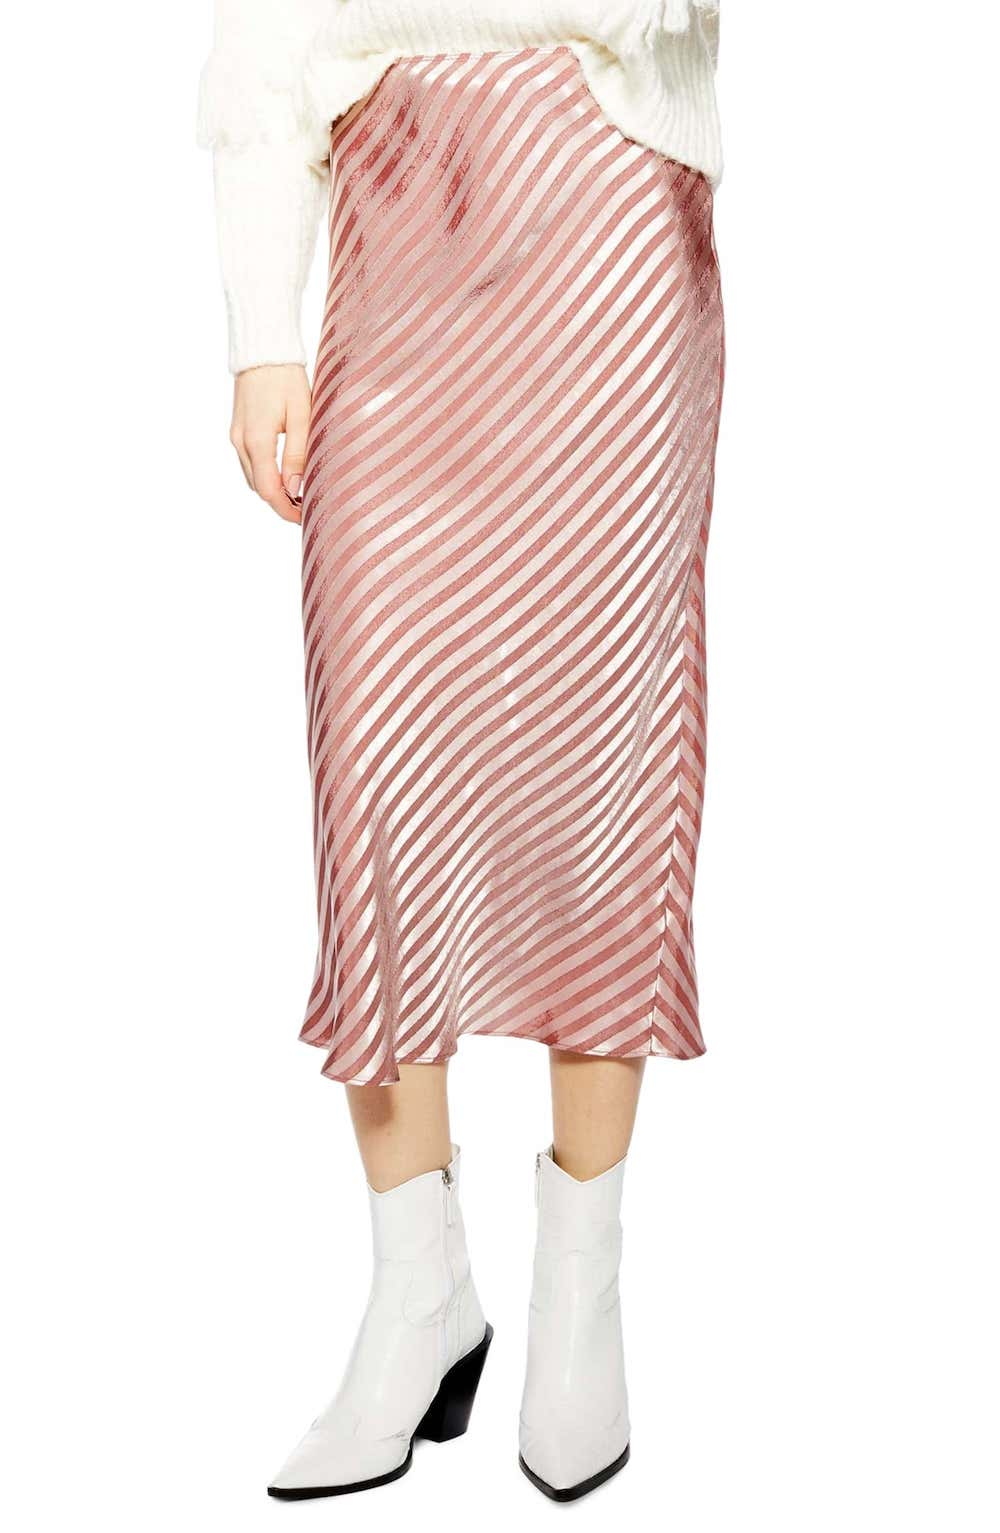 Topshop  27 Midi Skirts You Need in Your Closet ASAP Topshop Stripe Satin